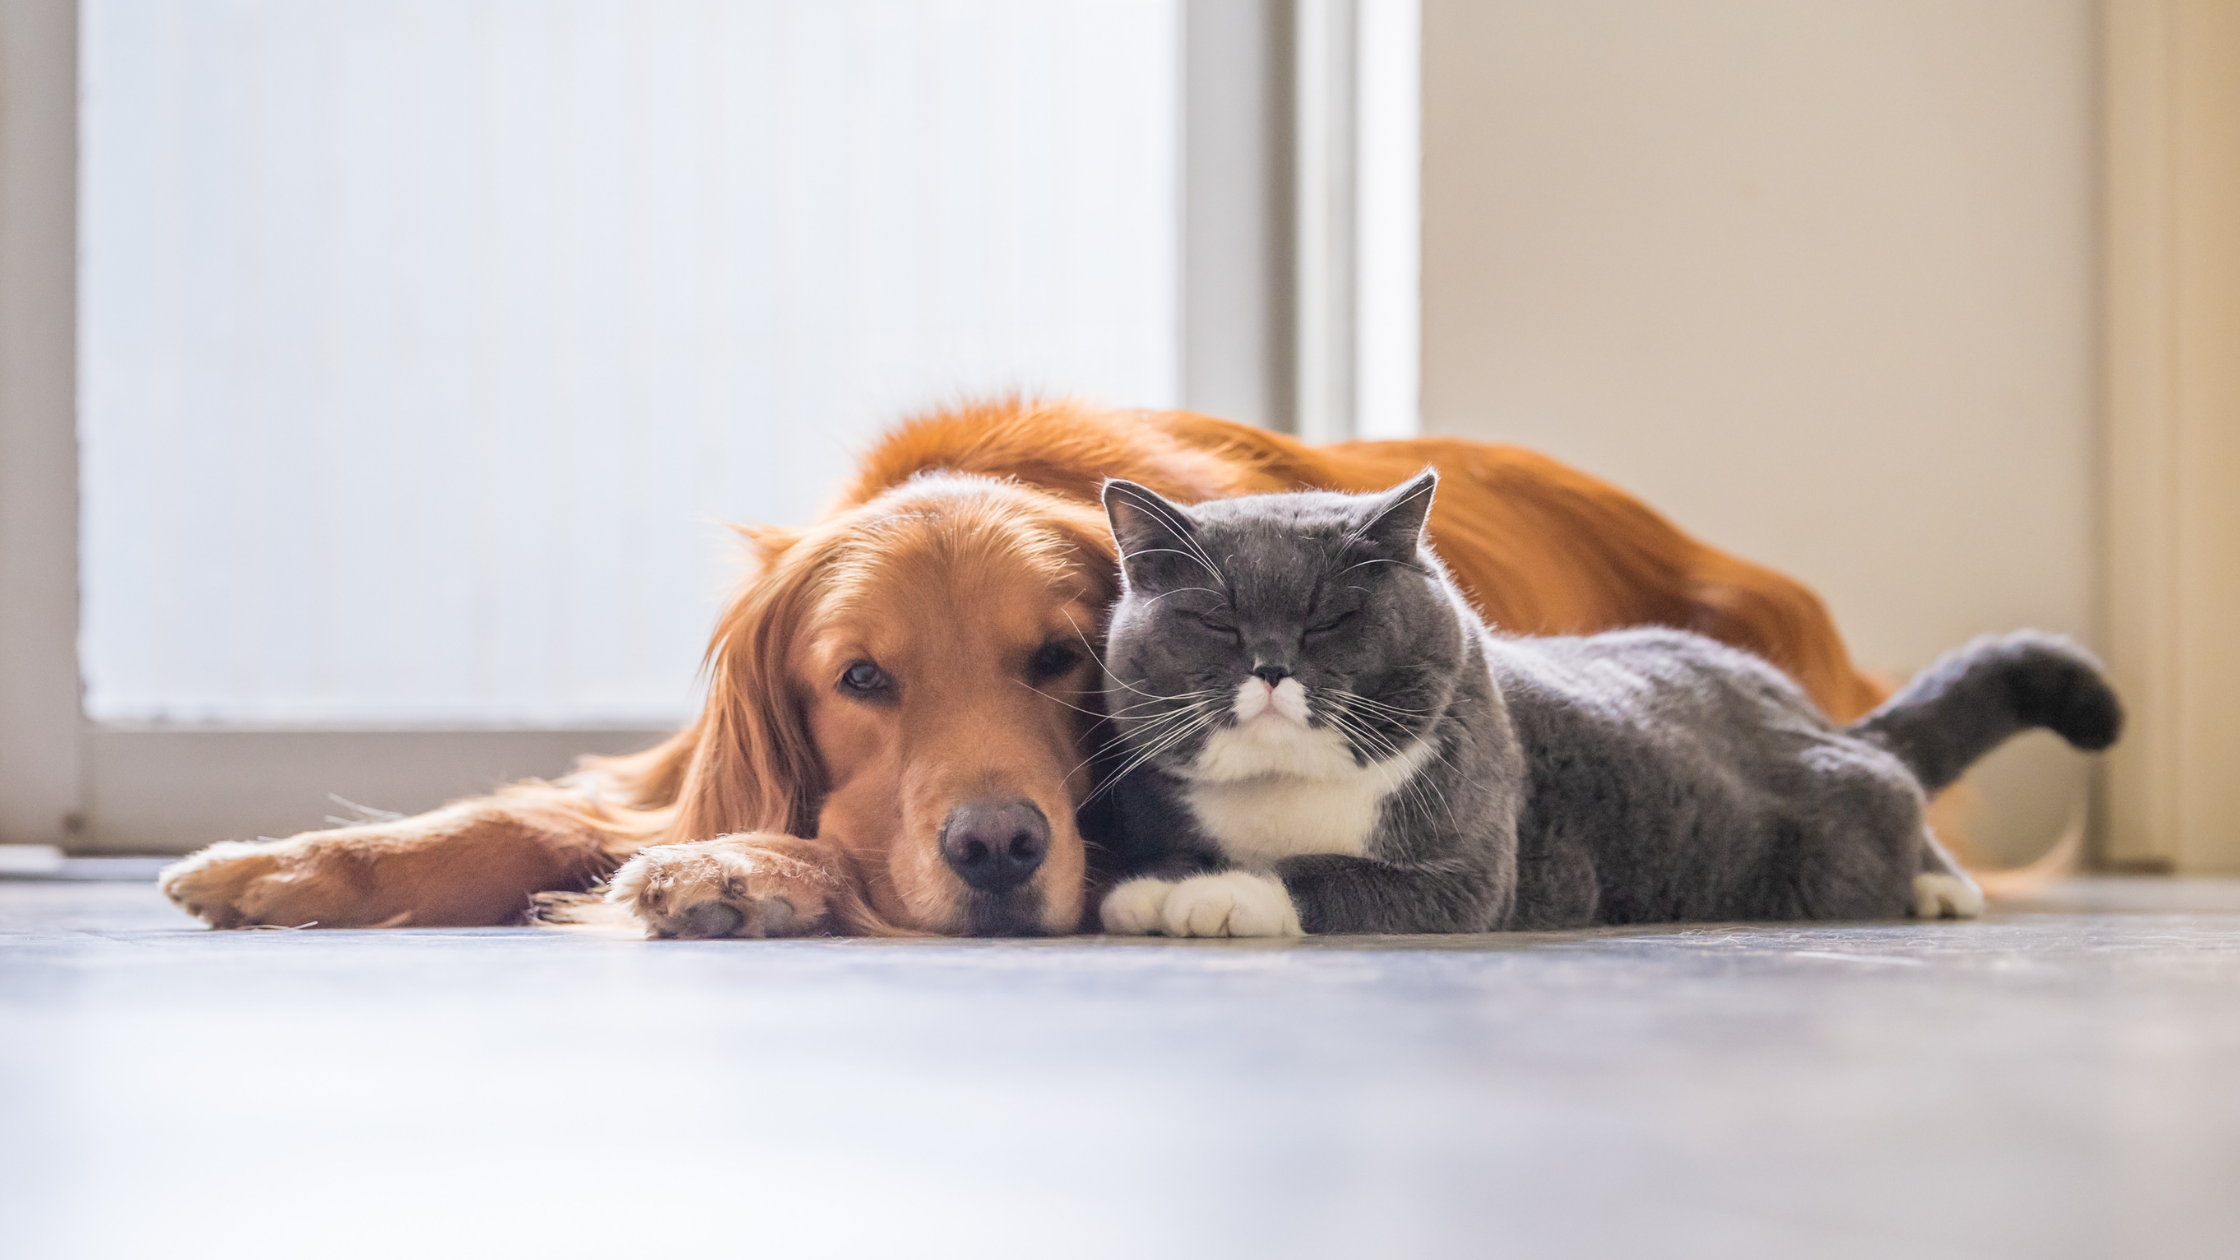 Cats Live Longer than Dogs